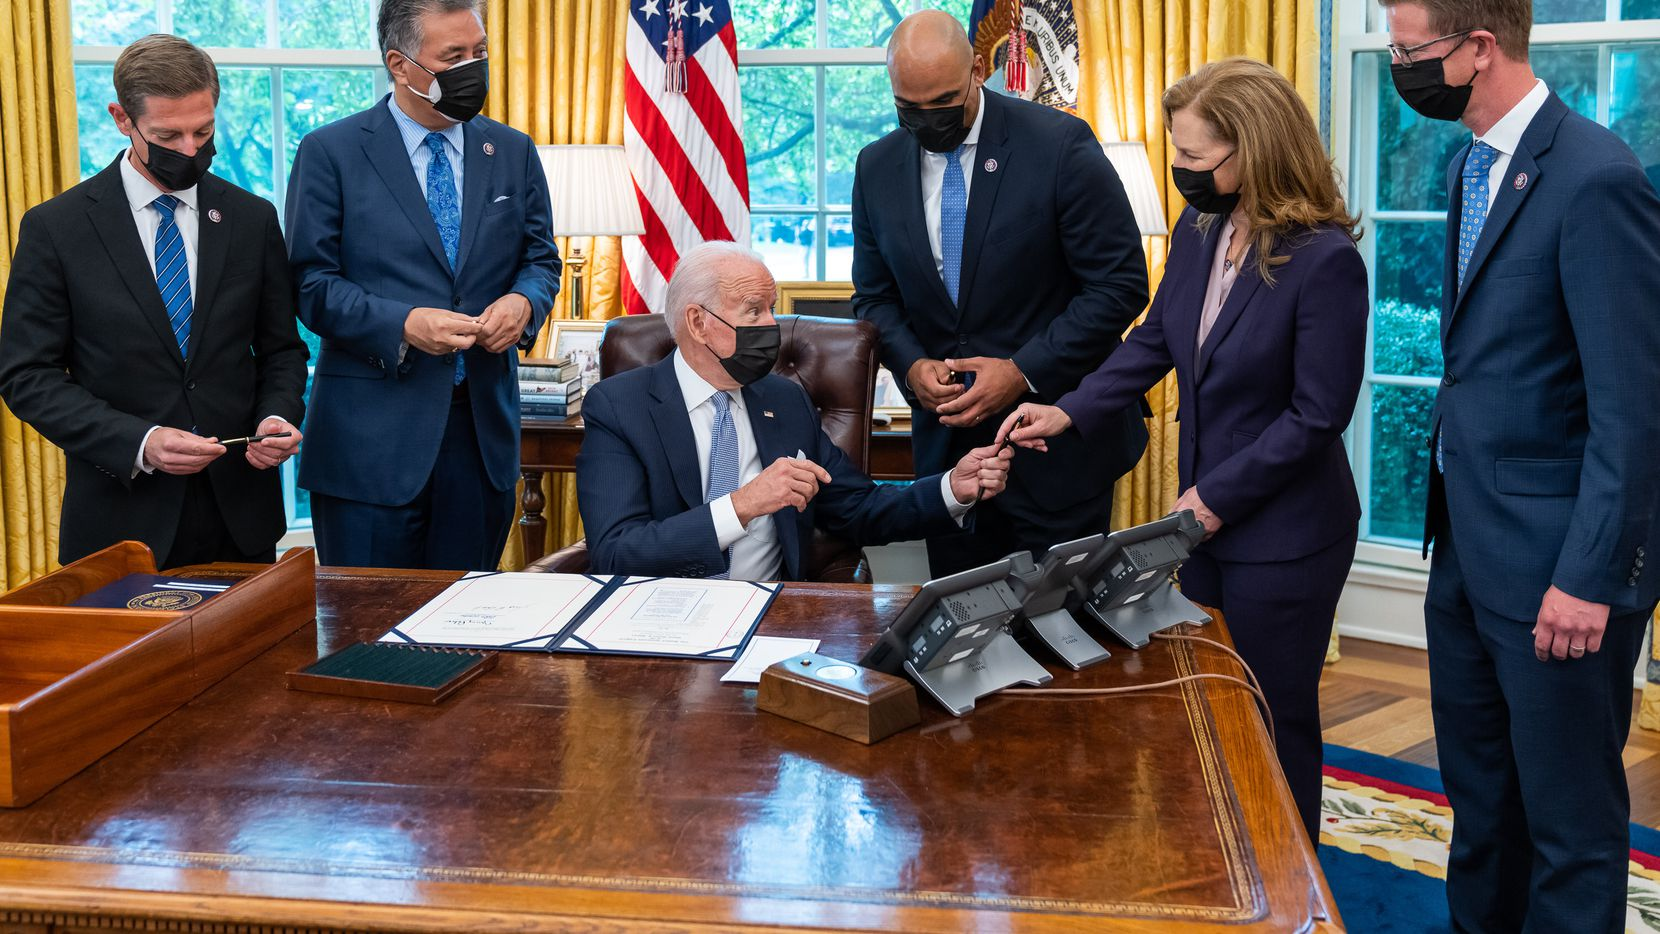 President Joe Biden, joined by members of Congress, signs the Major Medial Facility Authorization Act of 2021, Thursday, July 29, 2021, in the Oval Office of the White House. (Official White House Photo by Adam Schultz)